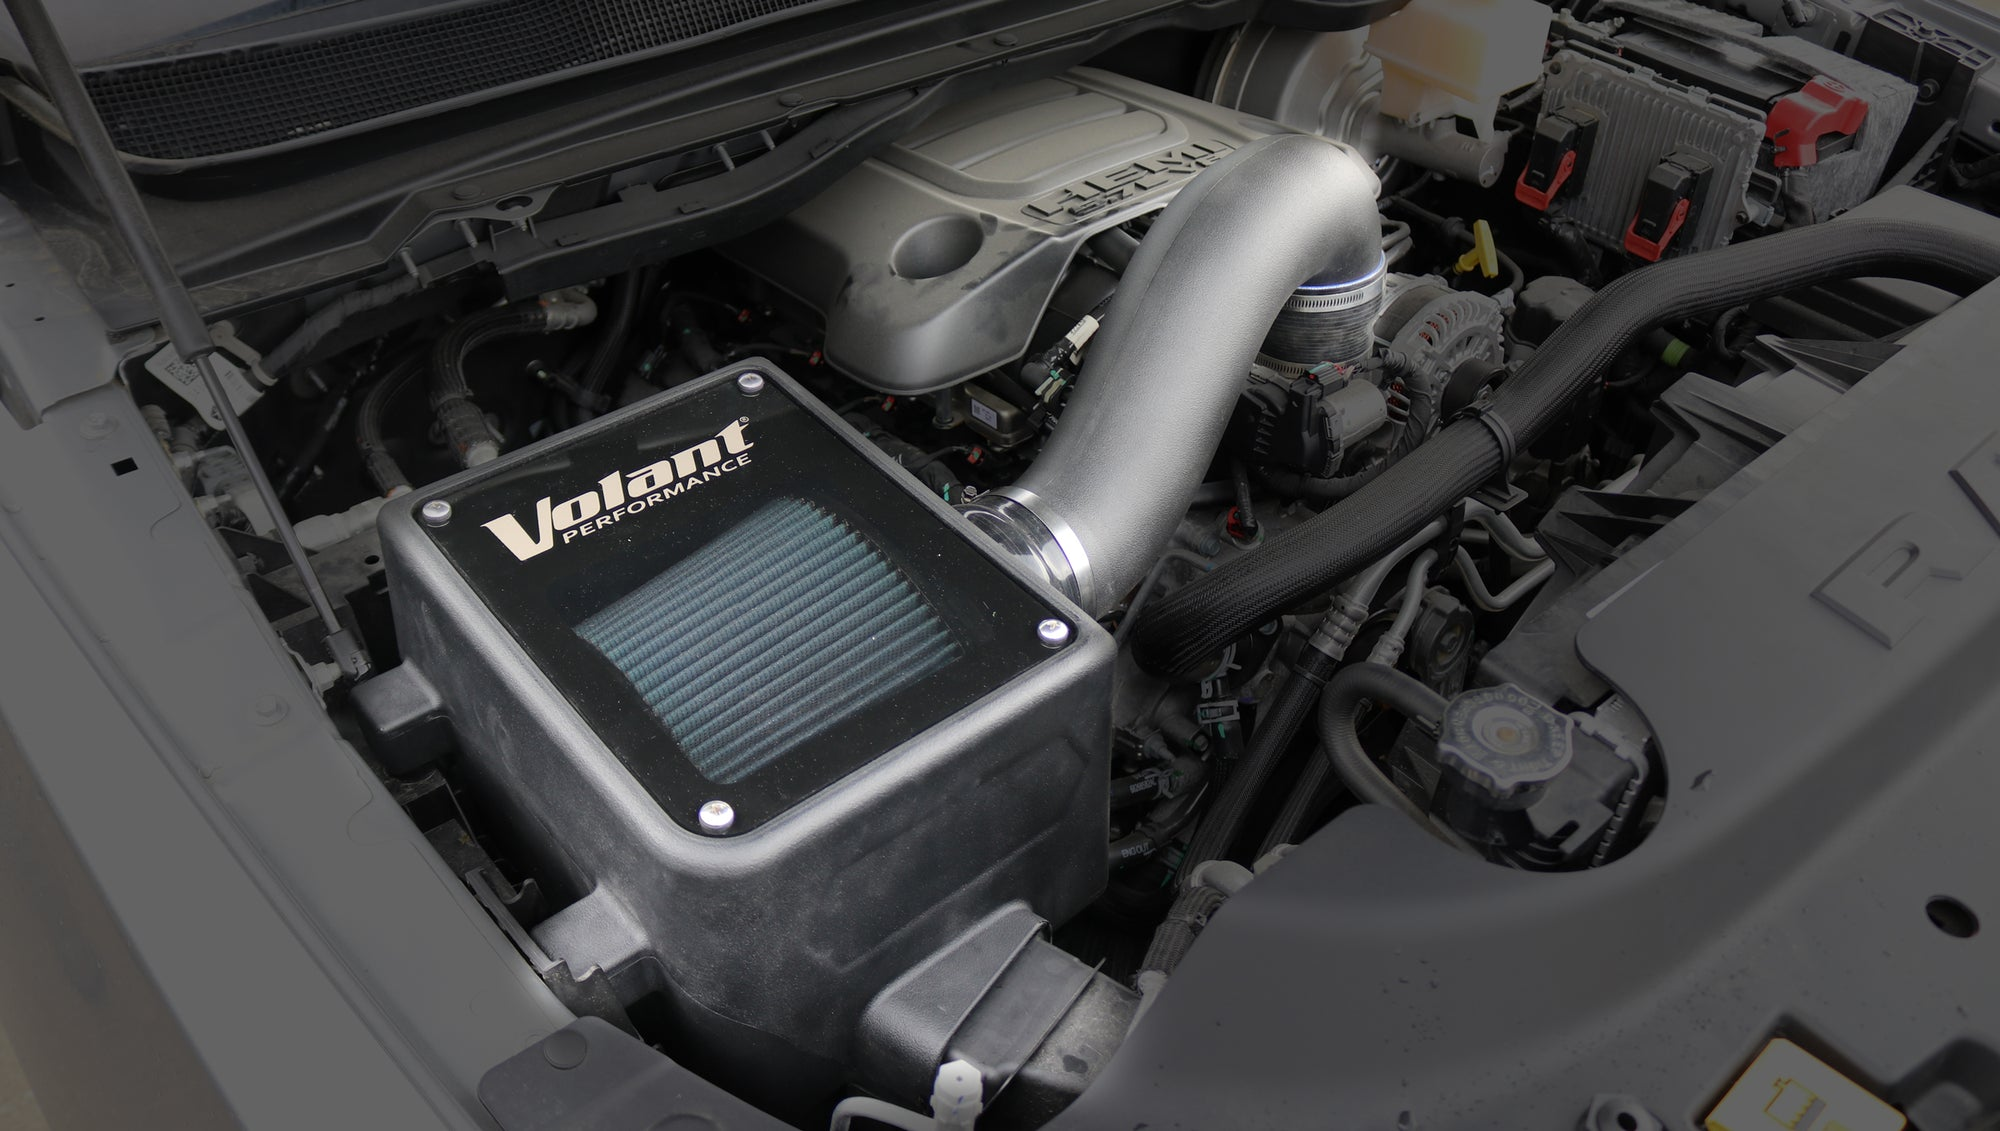 Volant Performance Cold Air Intakes - Trucks, SUVs and Cars.